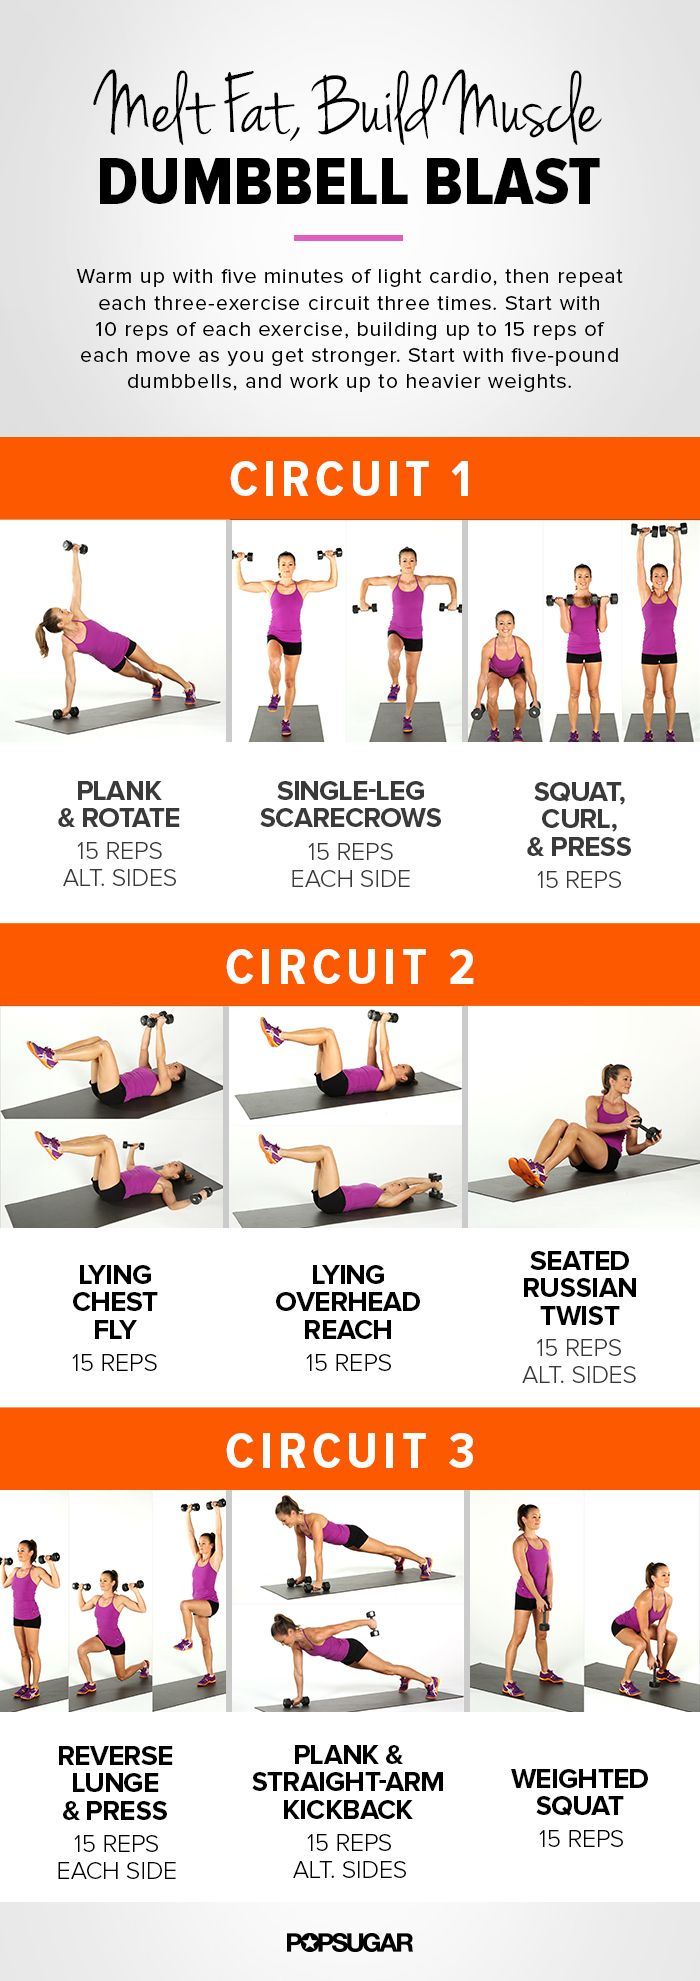 Melt Fat, Build Muscle Dumbbell Blast, Full Body Workout via FitSugar #printable #strong #fitness